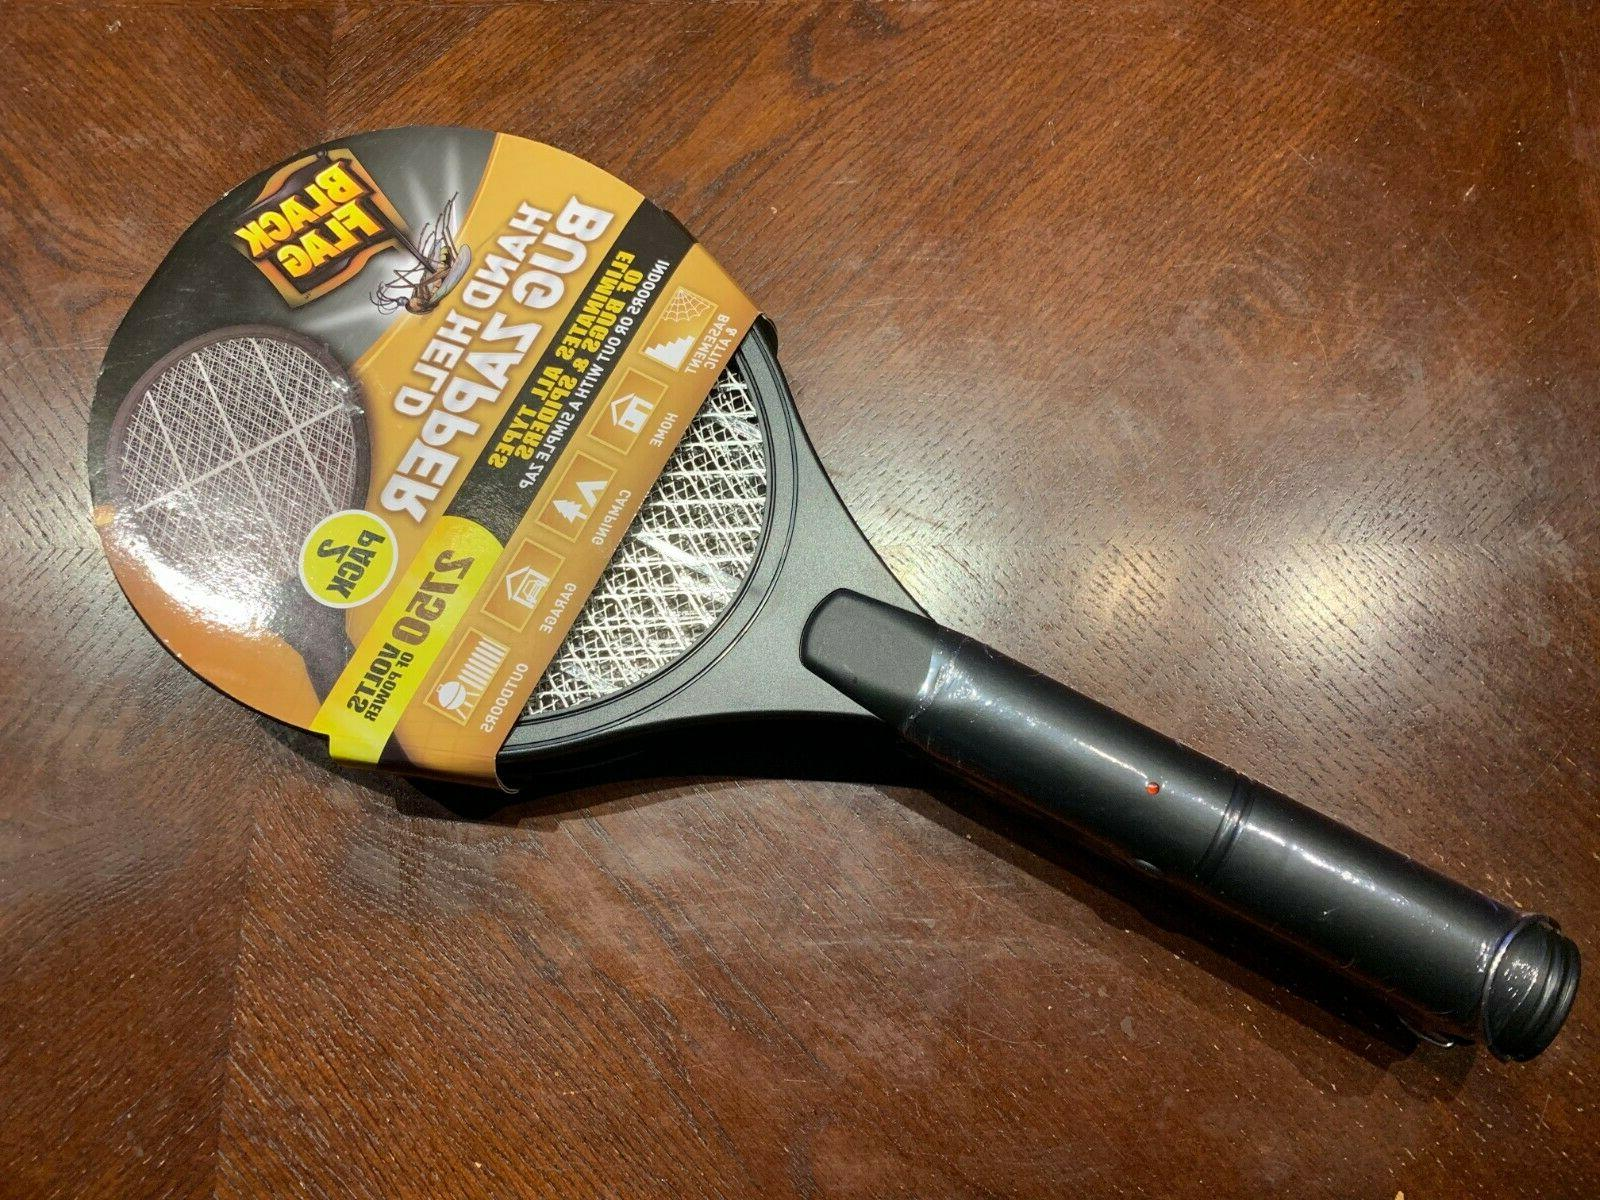 2x hand held bug zapper insect electric